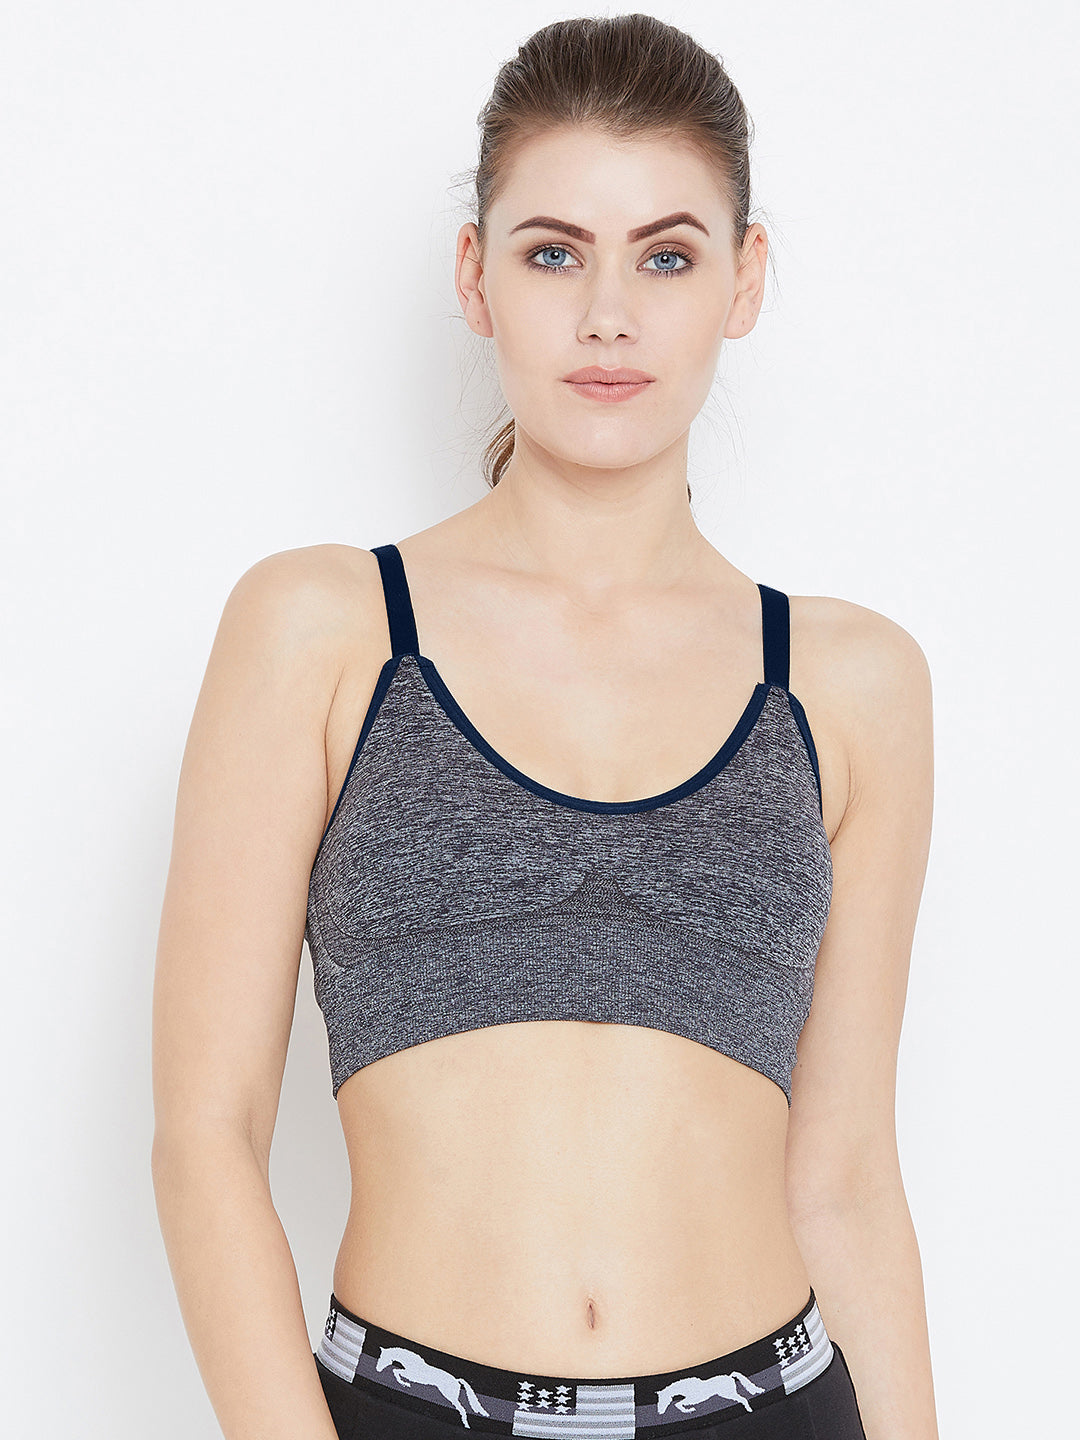 EquiCool Strappy Sports Bra - TuffRider - Breeches.com